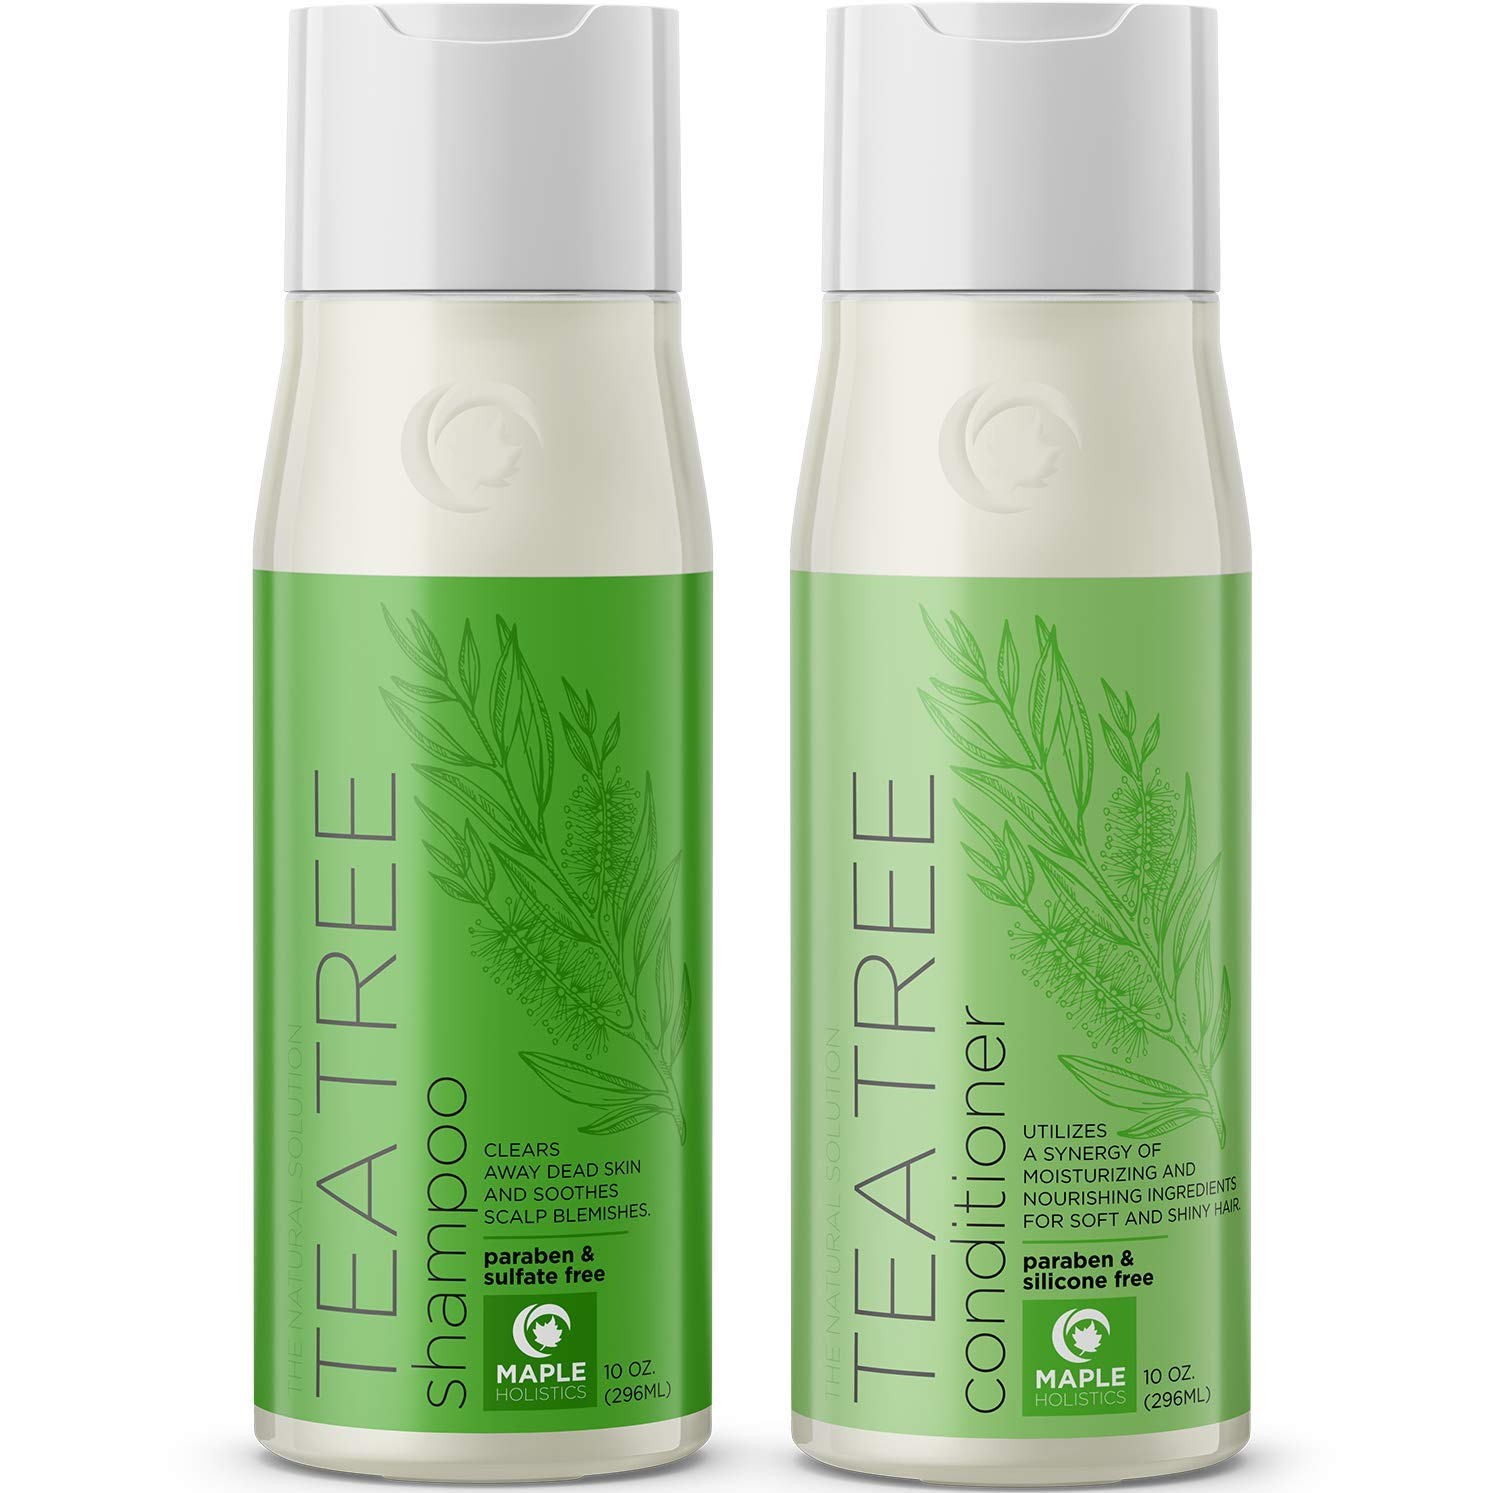 Tea Tree Shampoo and Conditioner for Color Treated Hair - Sulfate Free Anti Dandruff Hair Care for Women and Men - Natural Itchy Scalp Cleanser - Hydrating Deep Conditioner for Dry Damaged Hair -10 oz by Maple Holistics